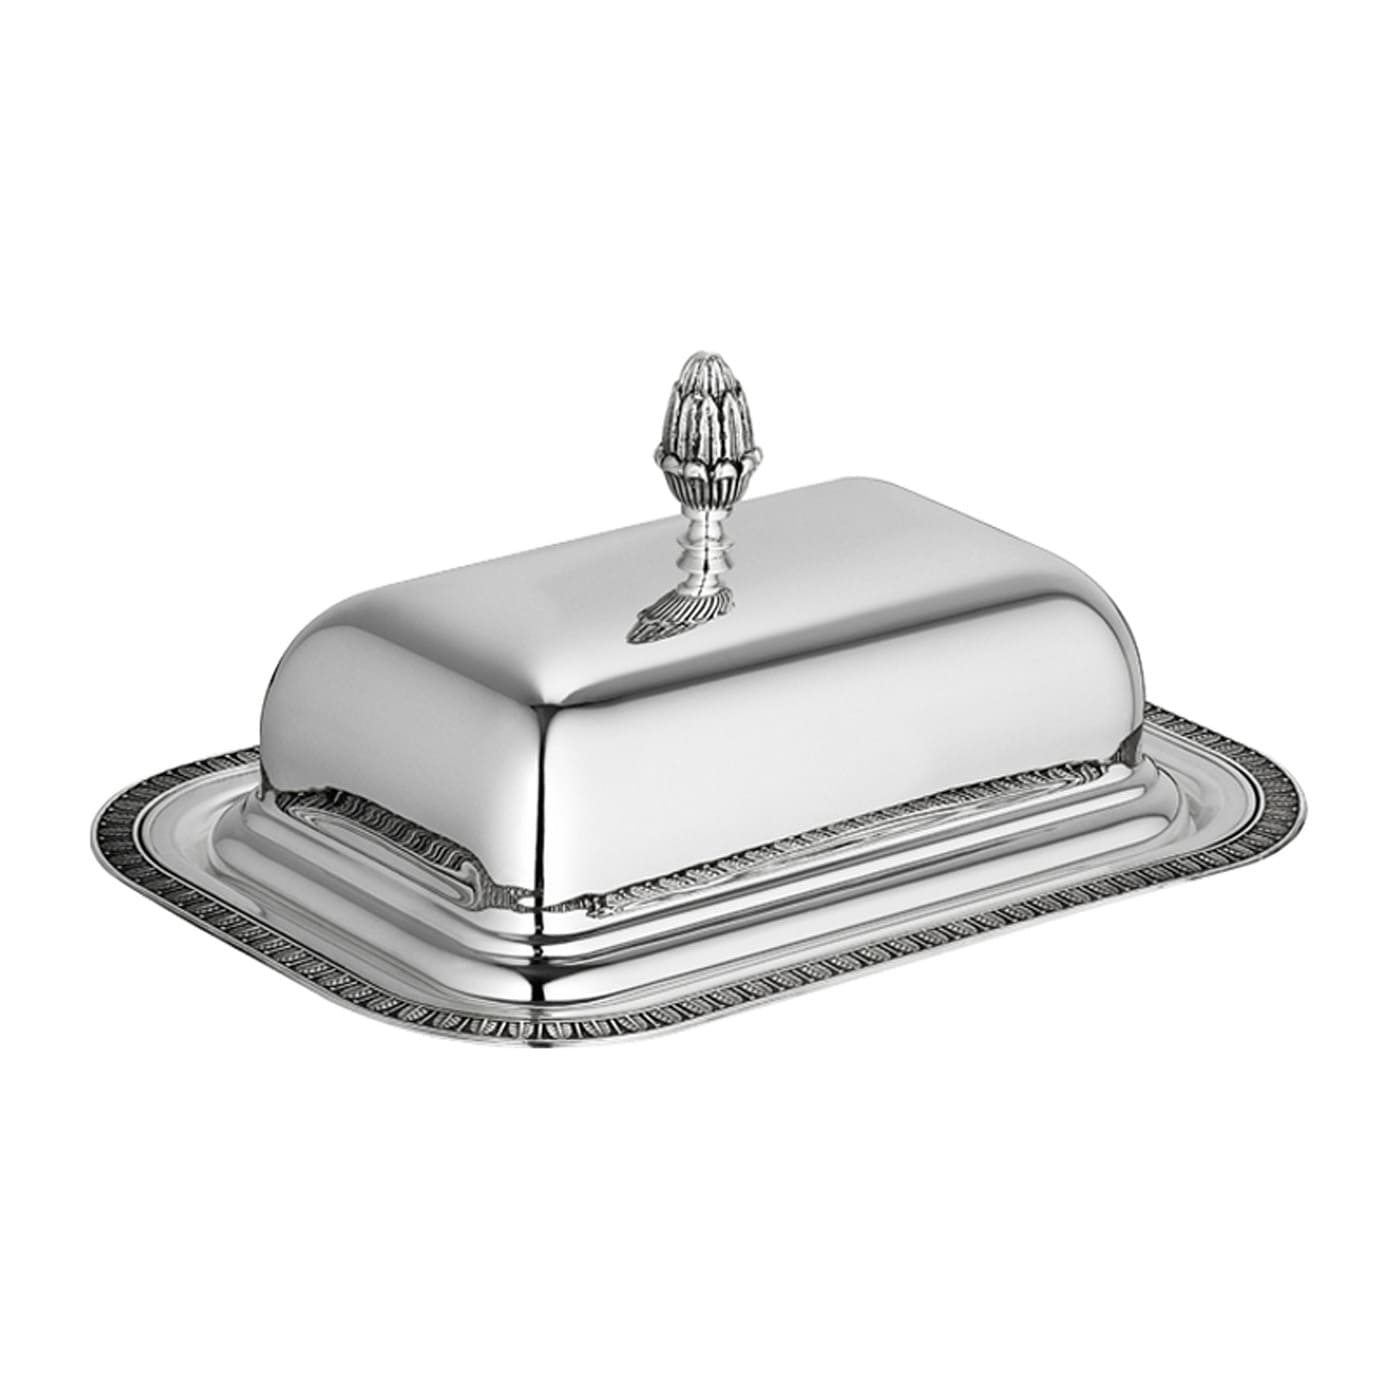 christofle silver plated malmaison butter dish